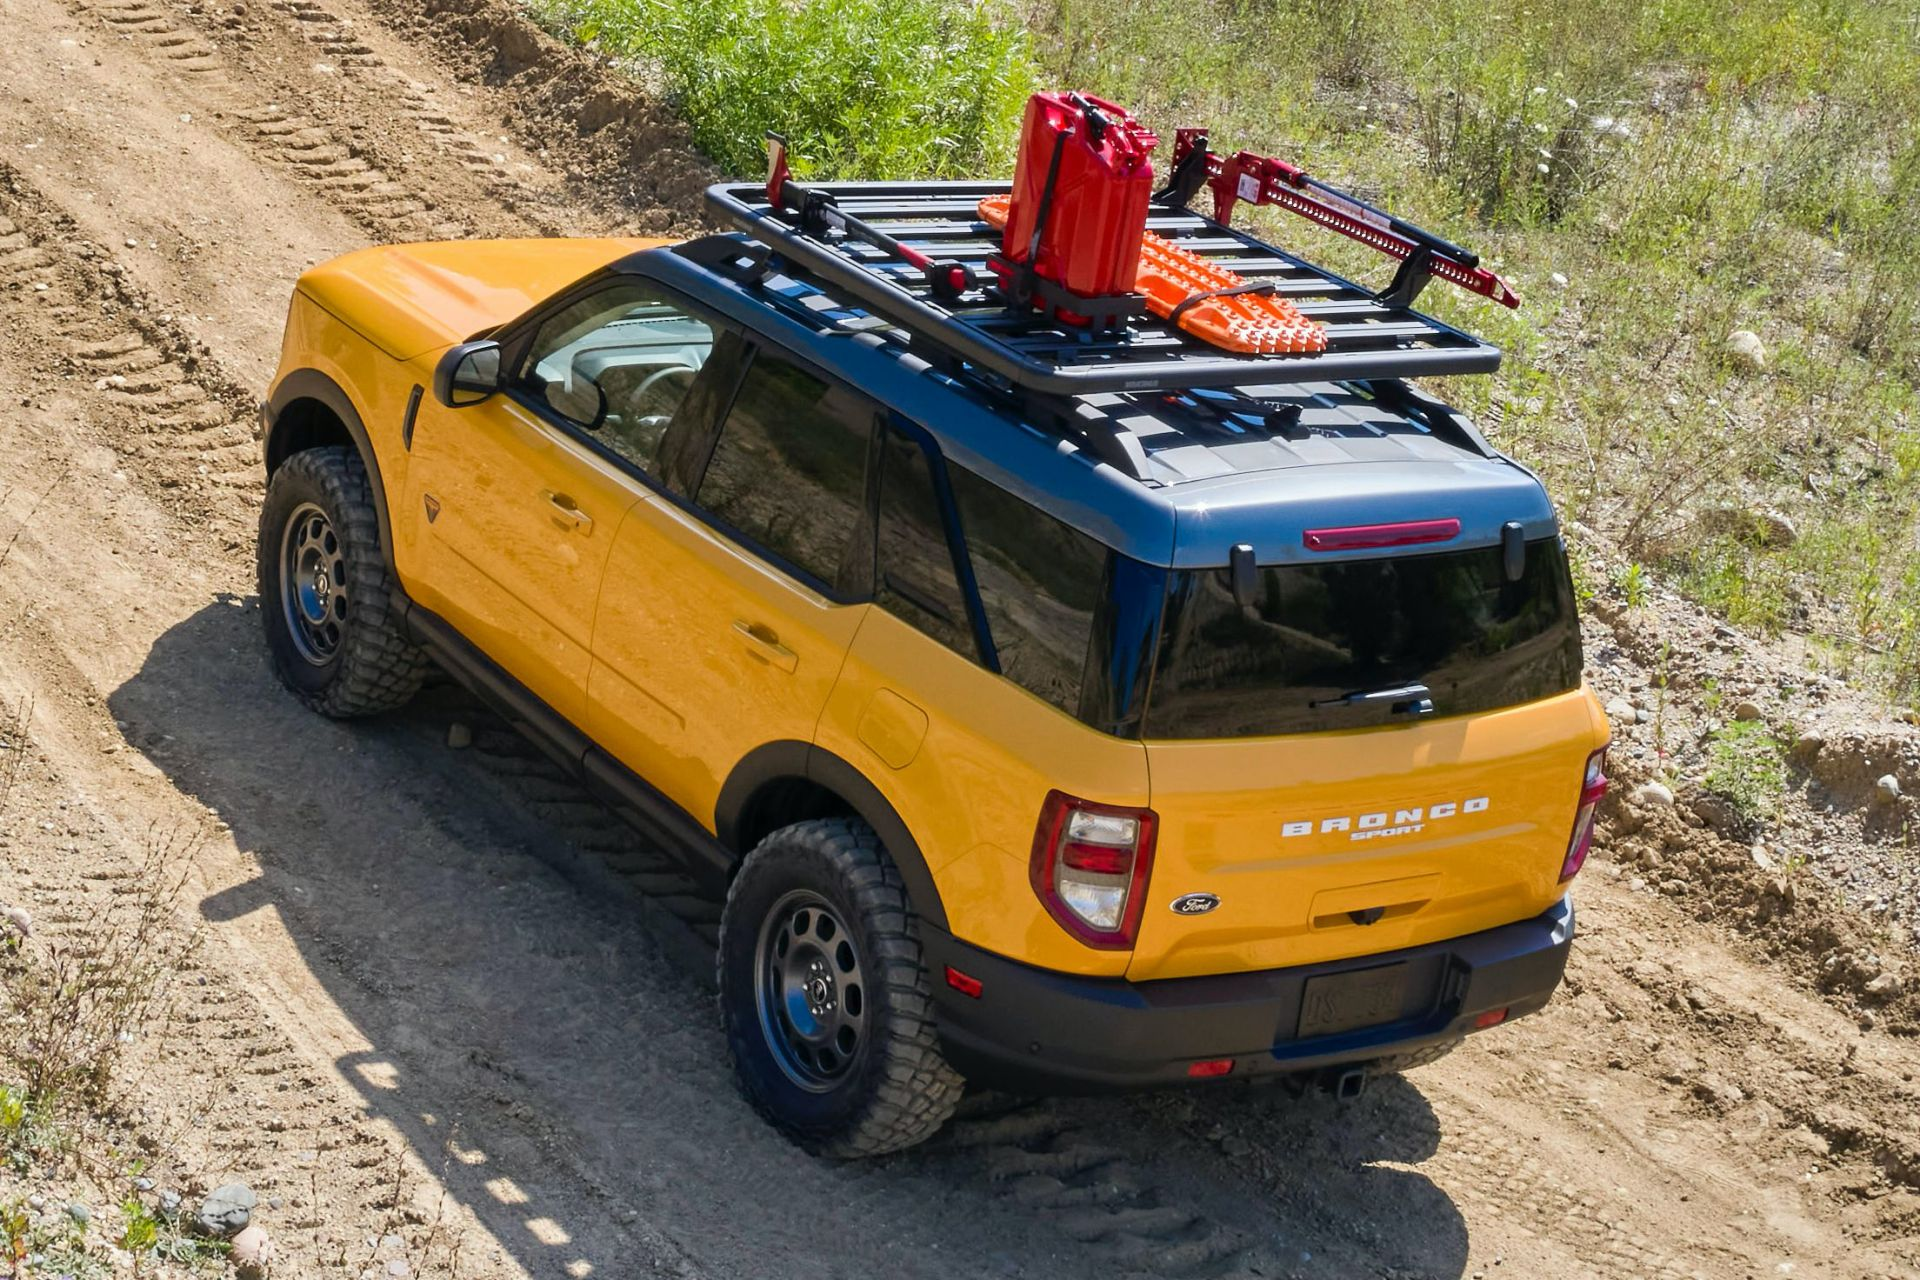 Ford-Bronco-Sport-Trail-Rig-Concept-5